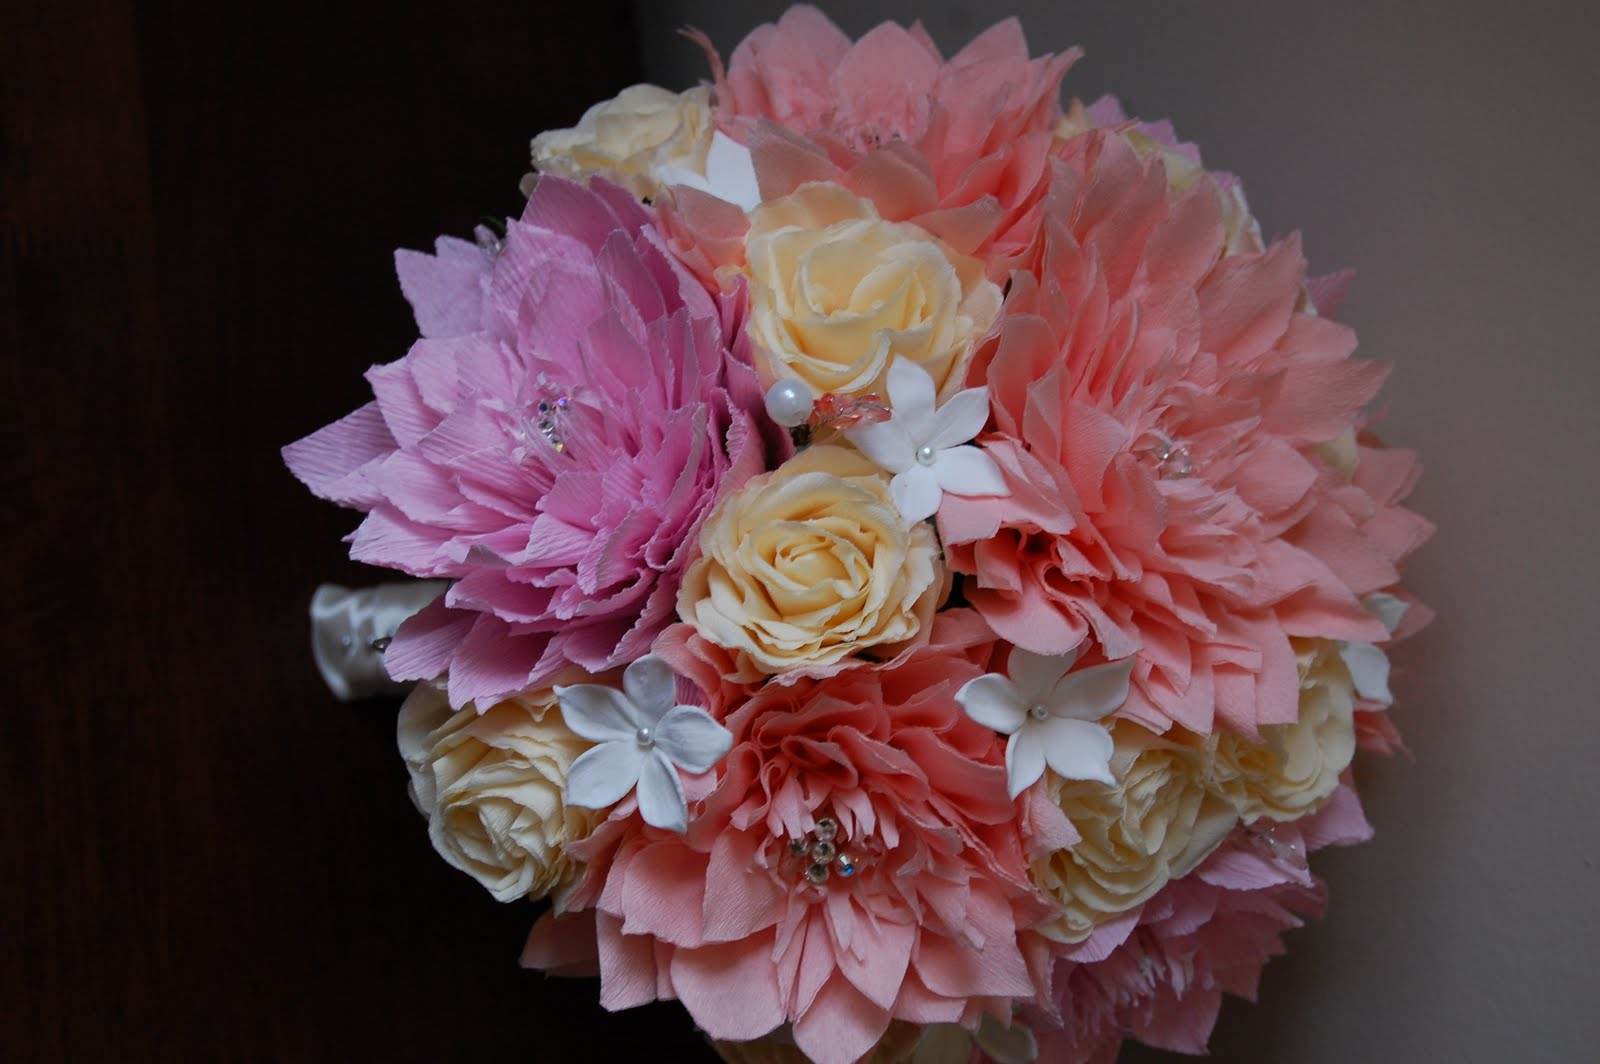 Luxury red tissue paper flowers component top wedding gowns tissue paper flower bouquets physicminimalistics izmirmasajfo